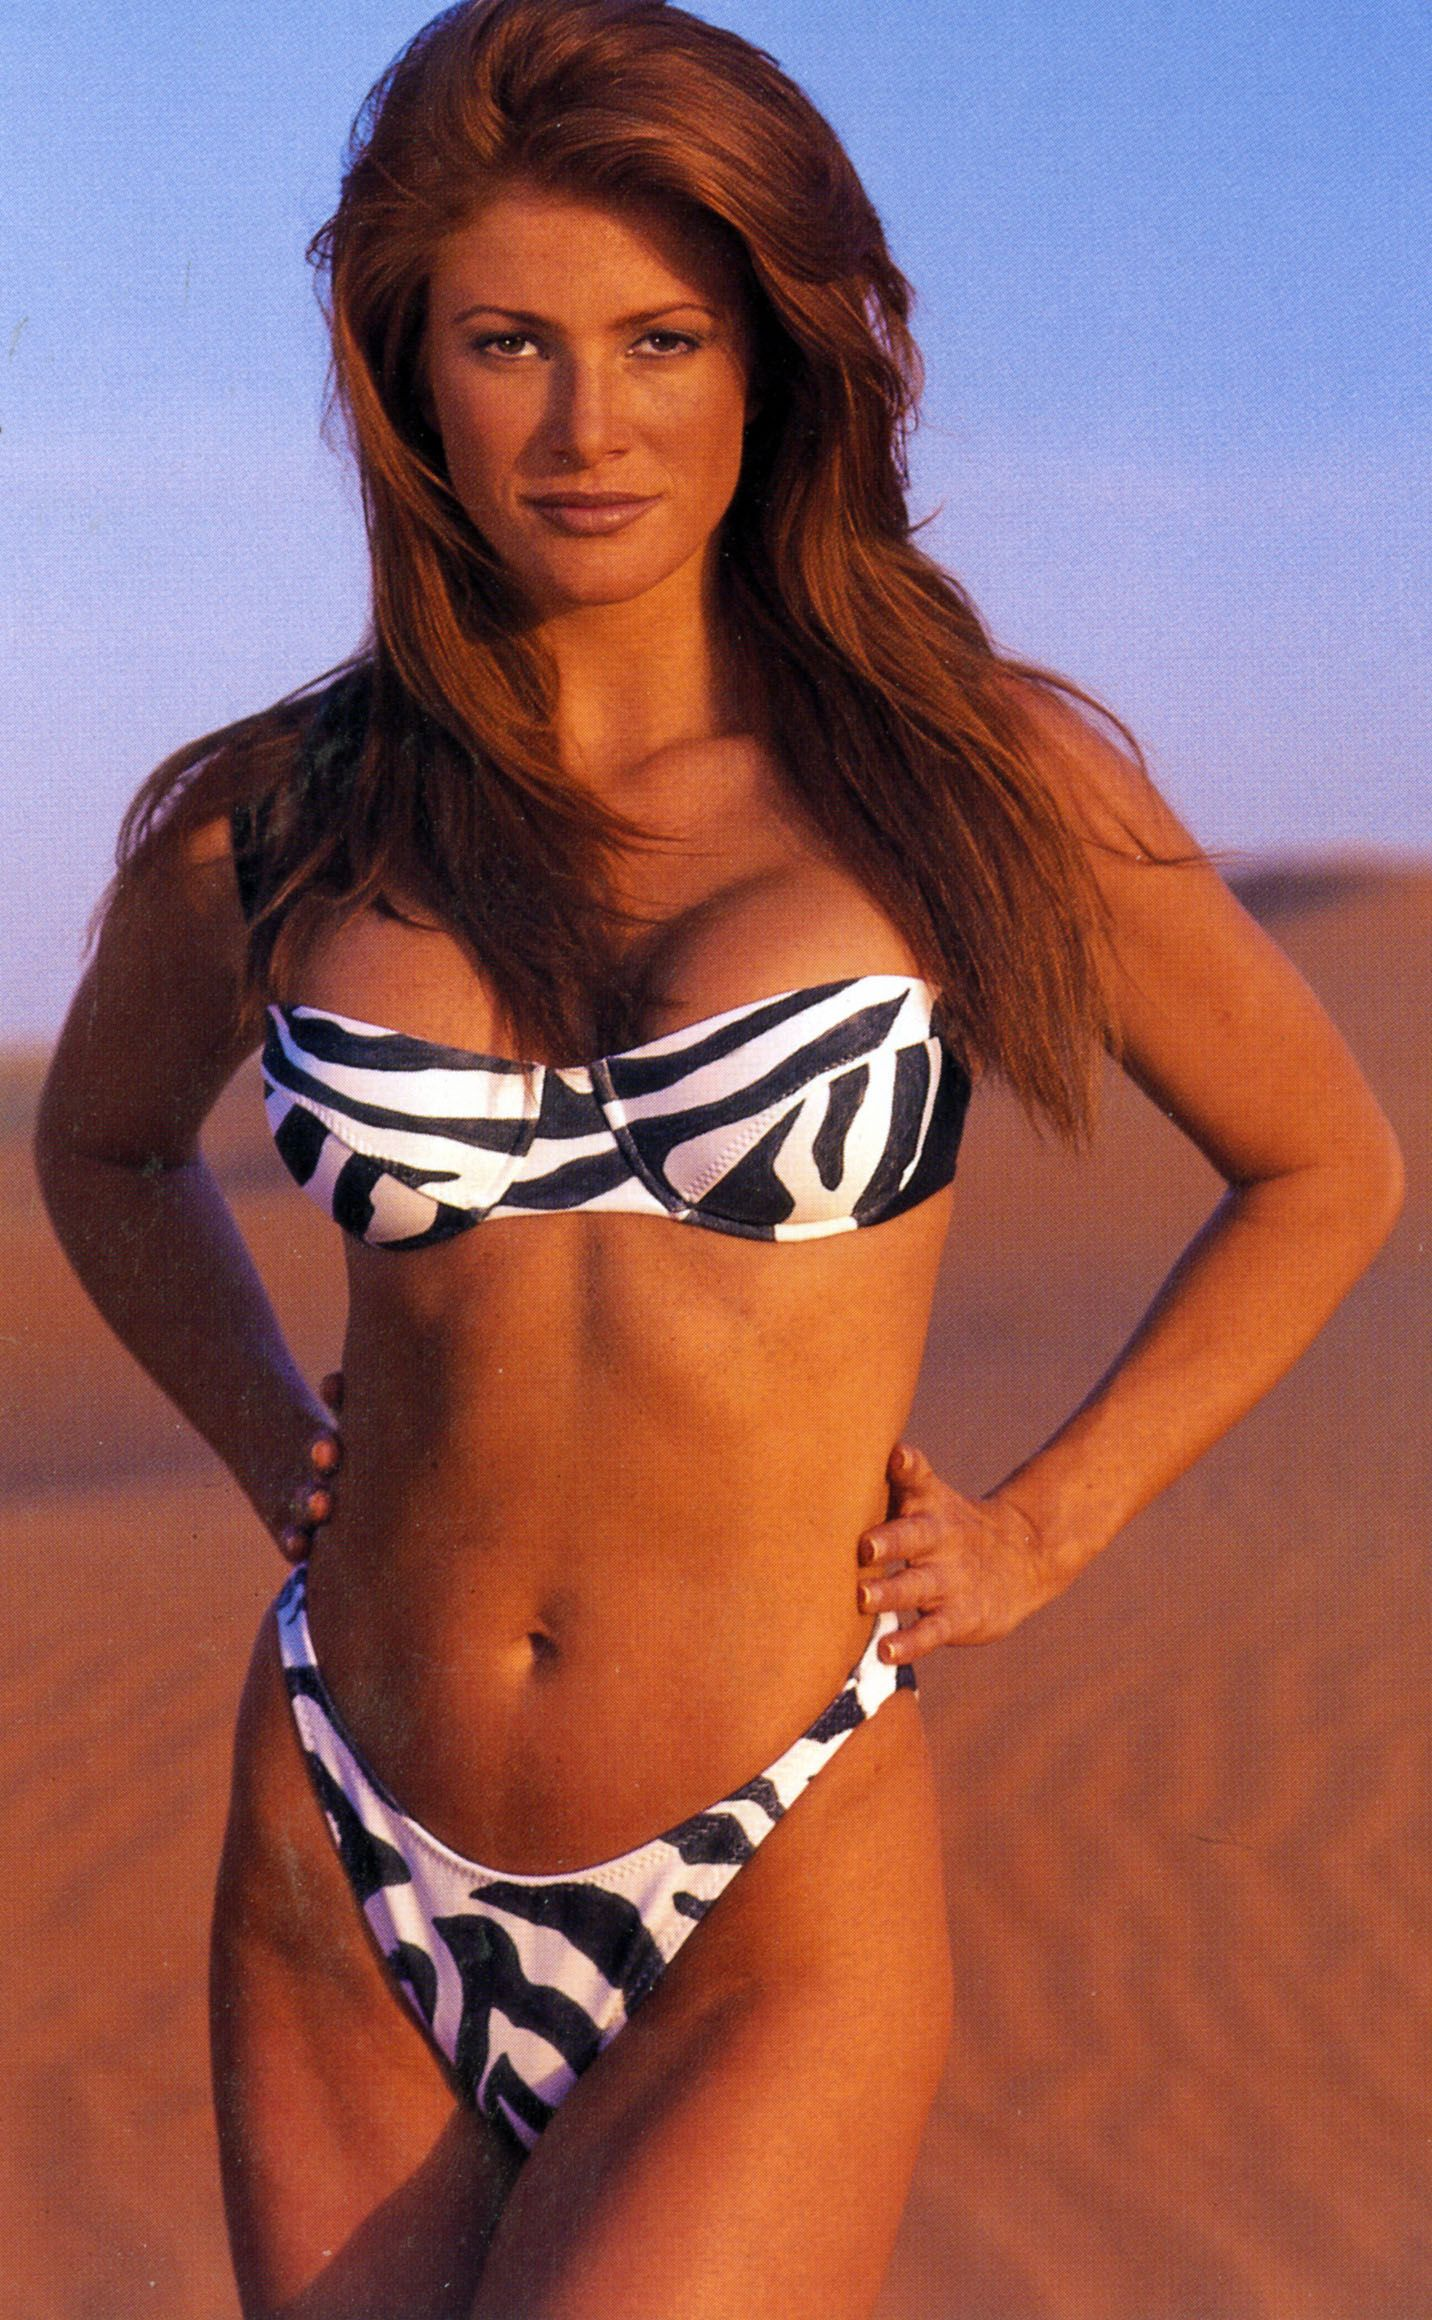 Angie Everhart Nue 31 best angie everhart images | angie everhart, redheads, model